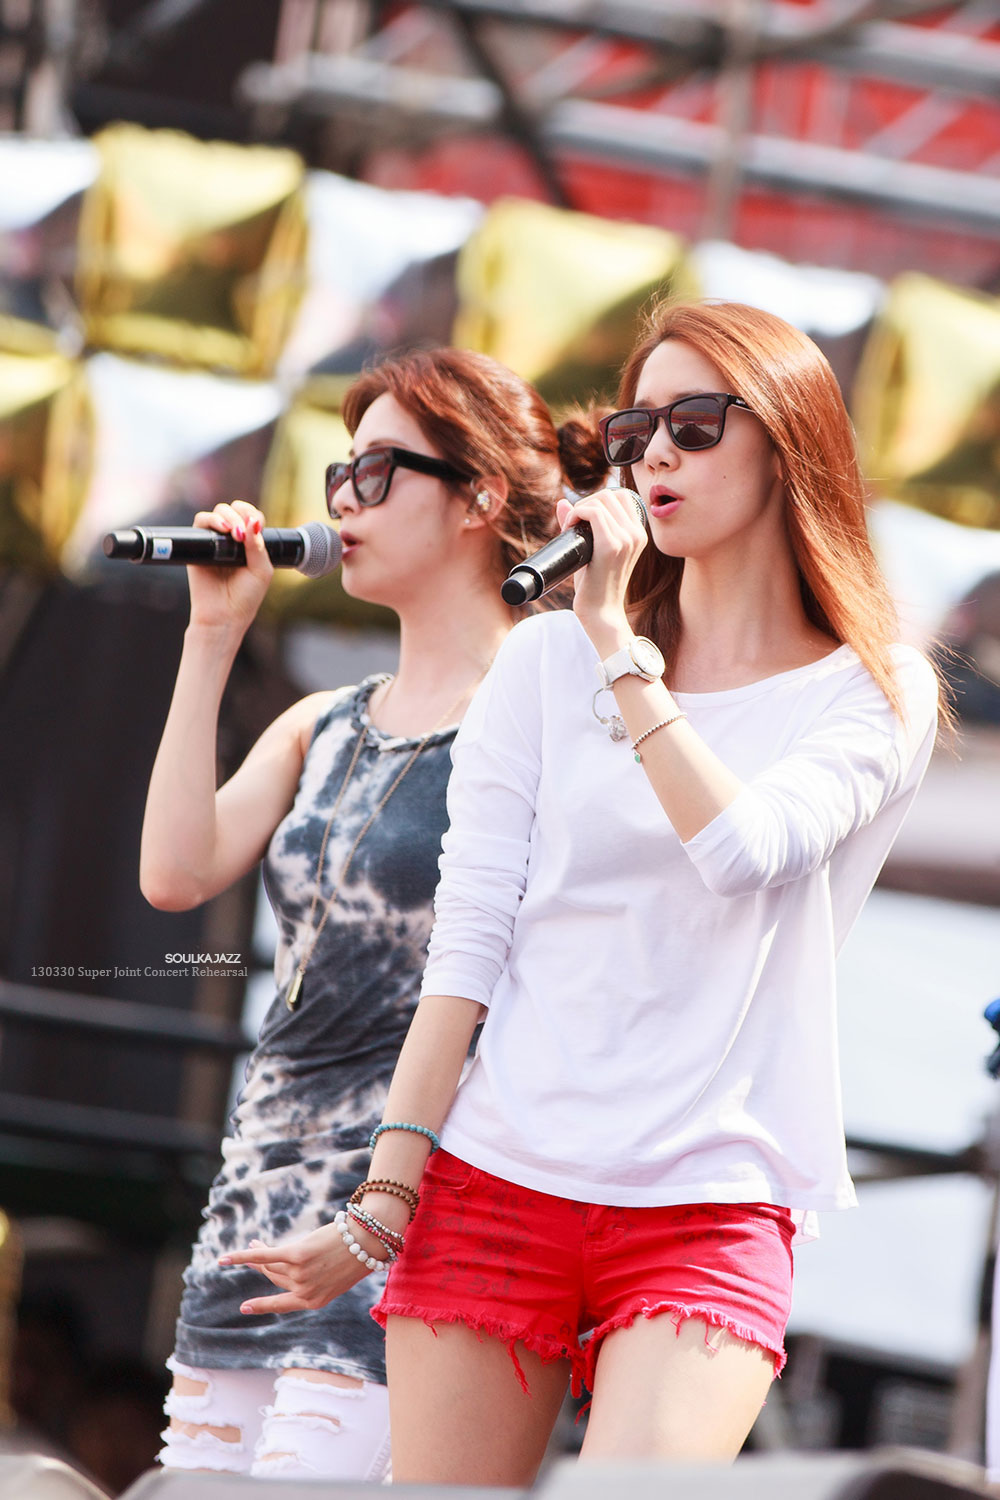 SNSD Super Joint Concert in Thailand Rehearsal